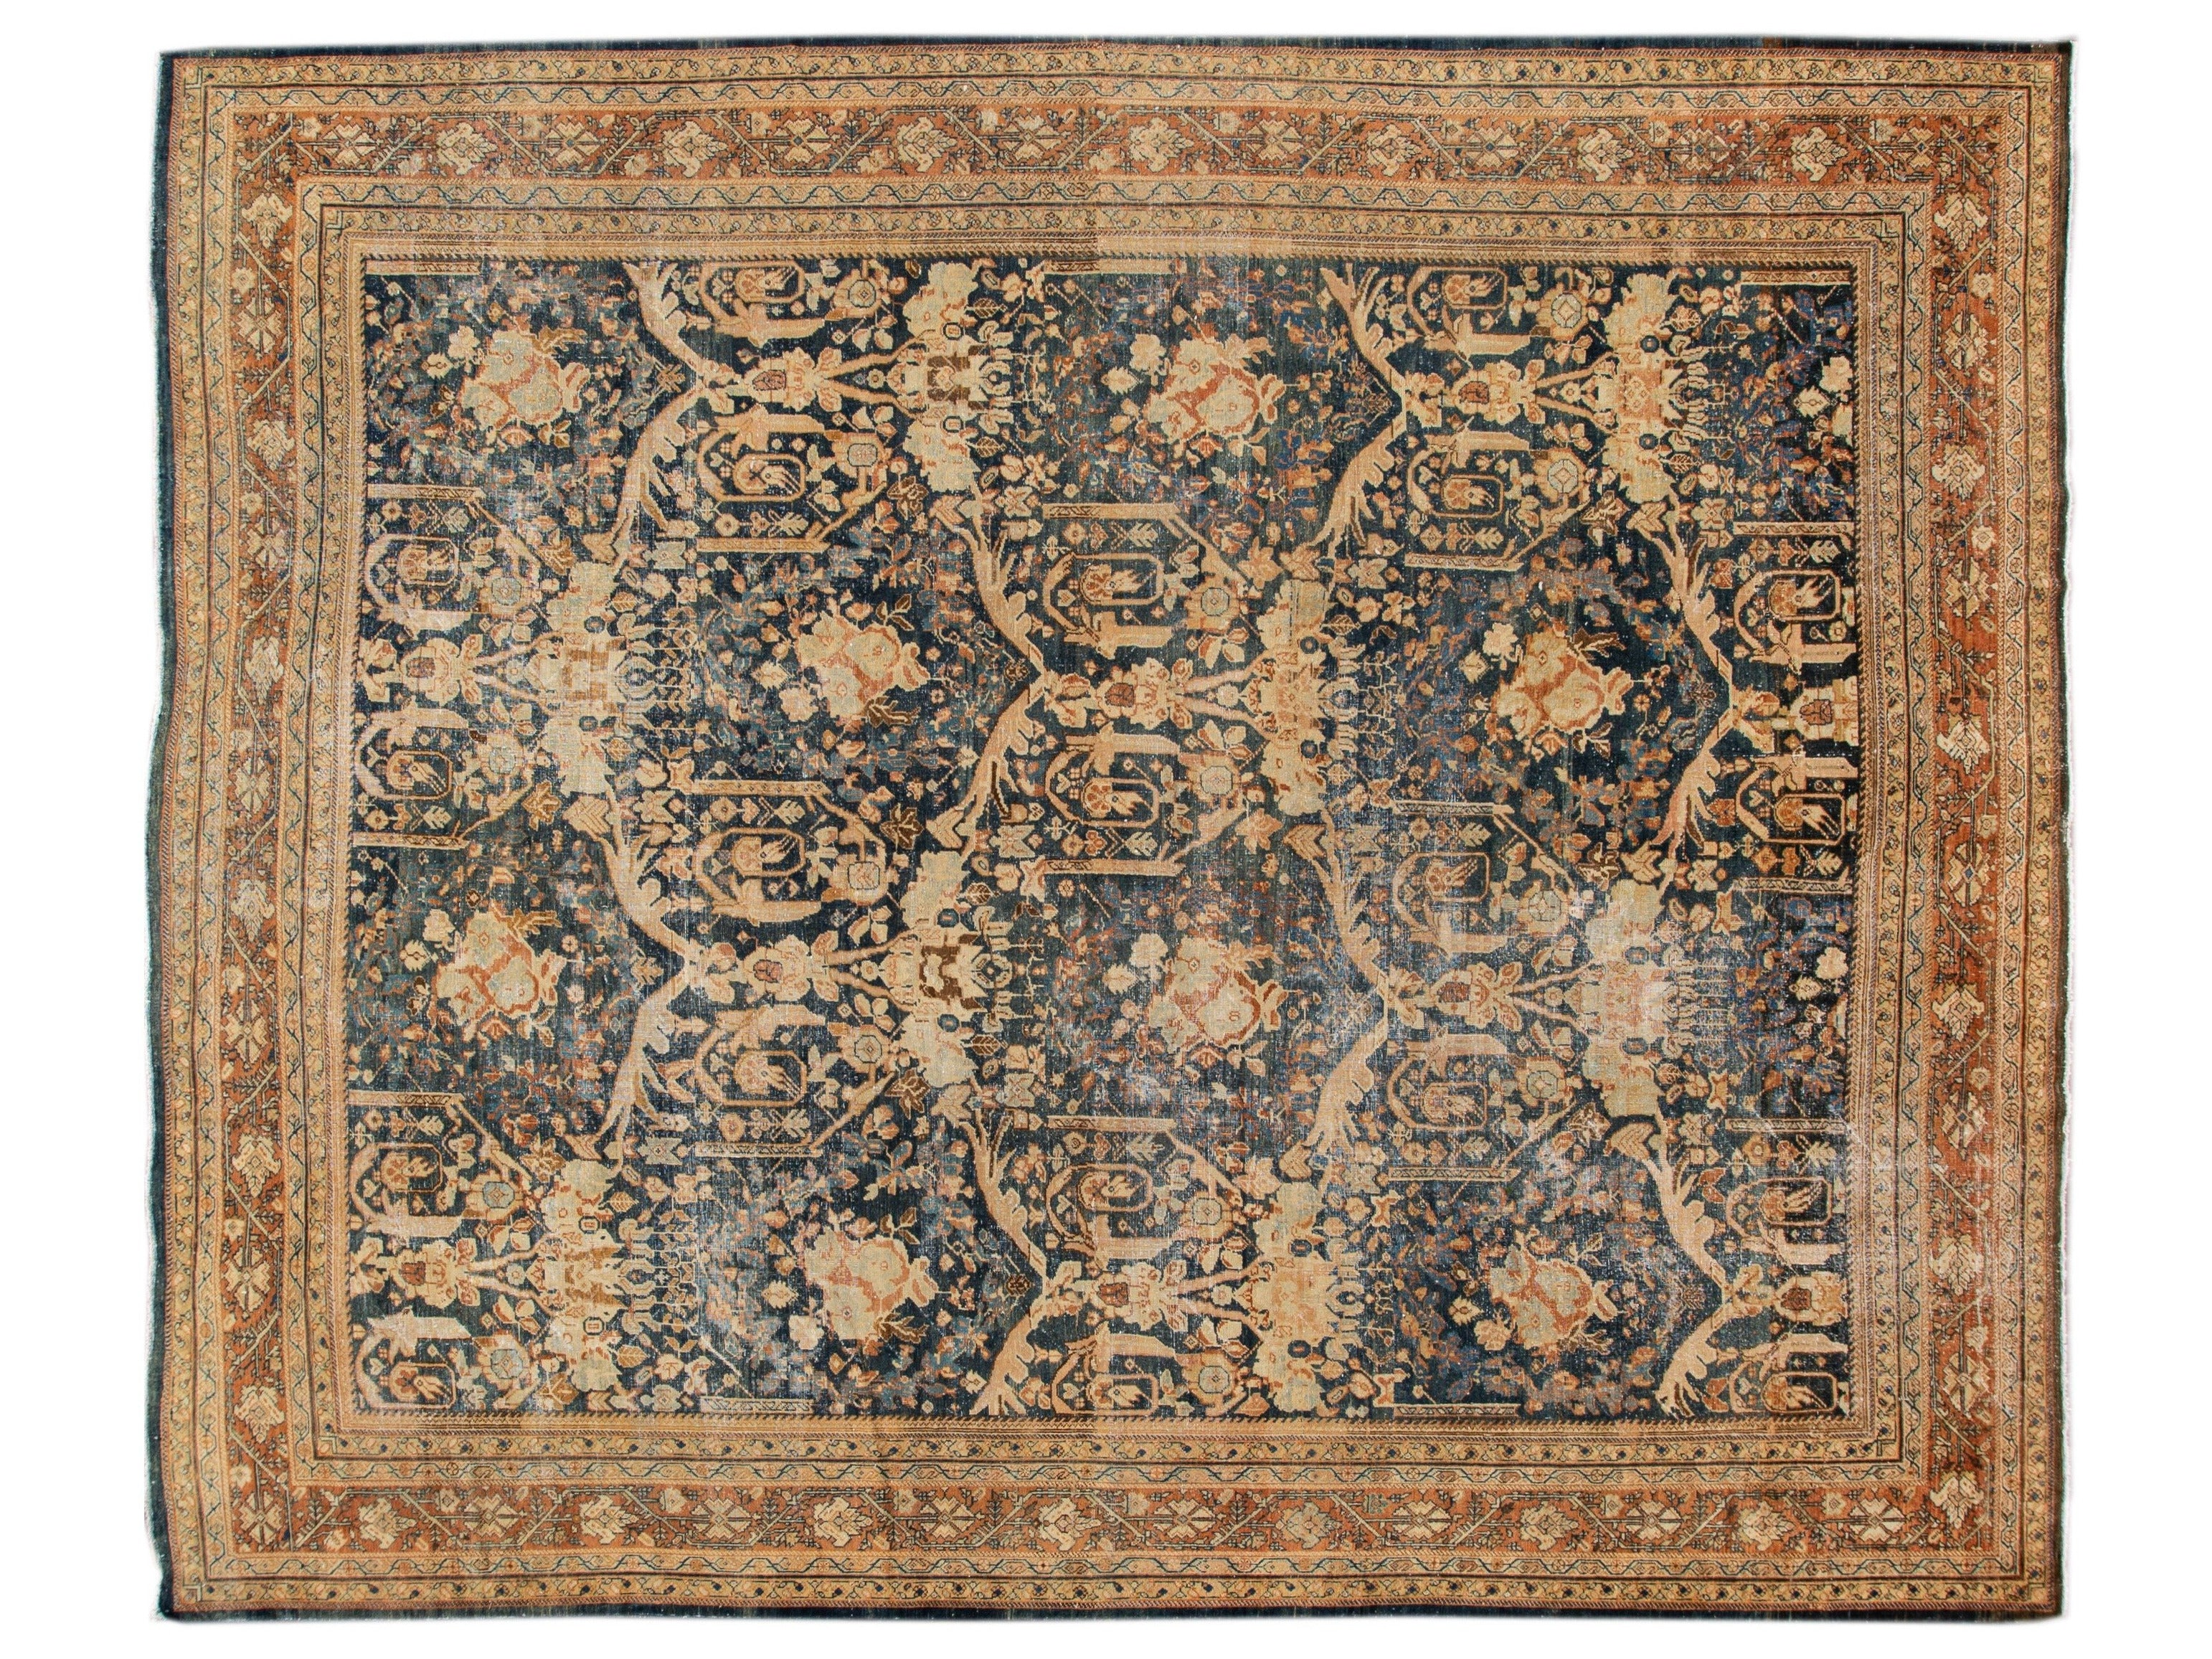 Antique Mahal Wool Rug 11 X 13